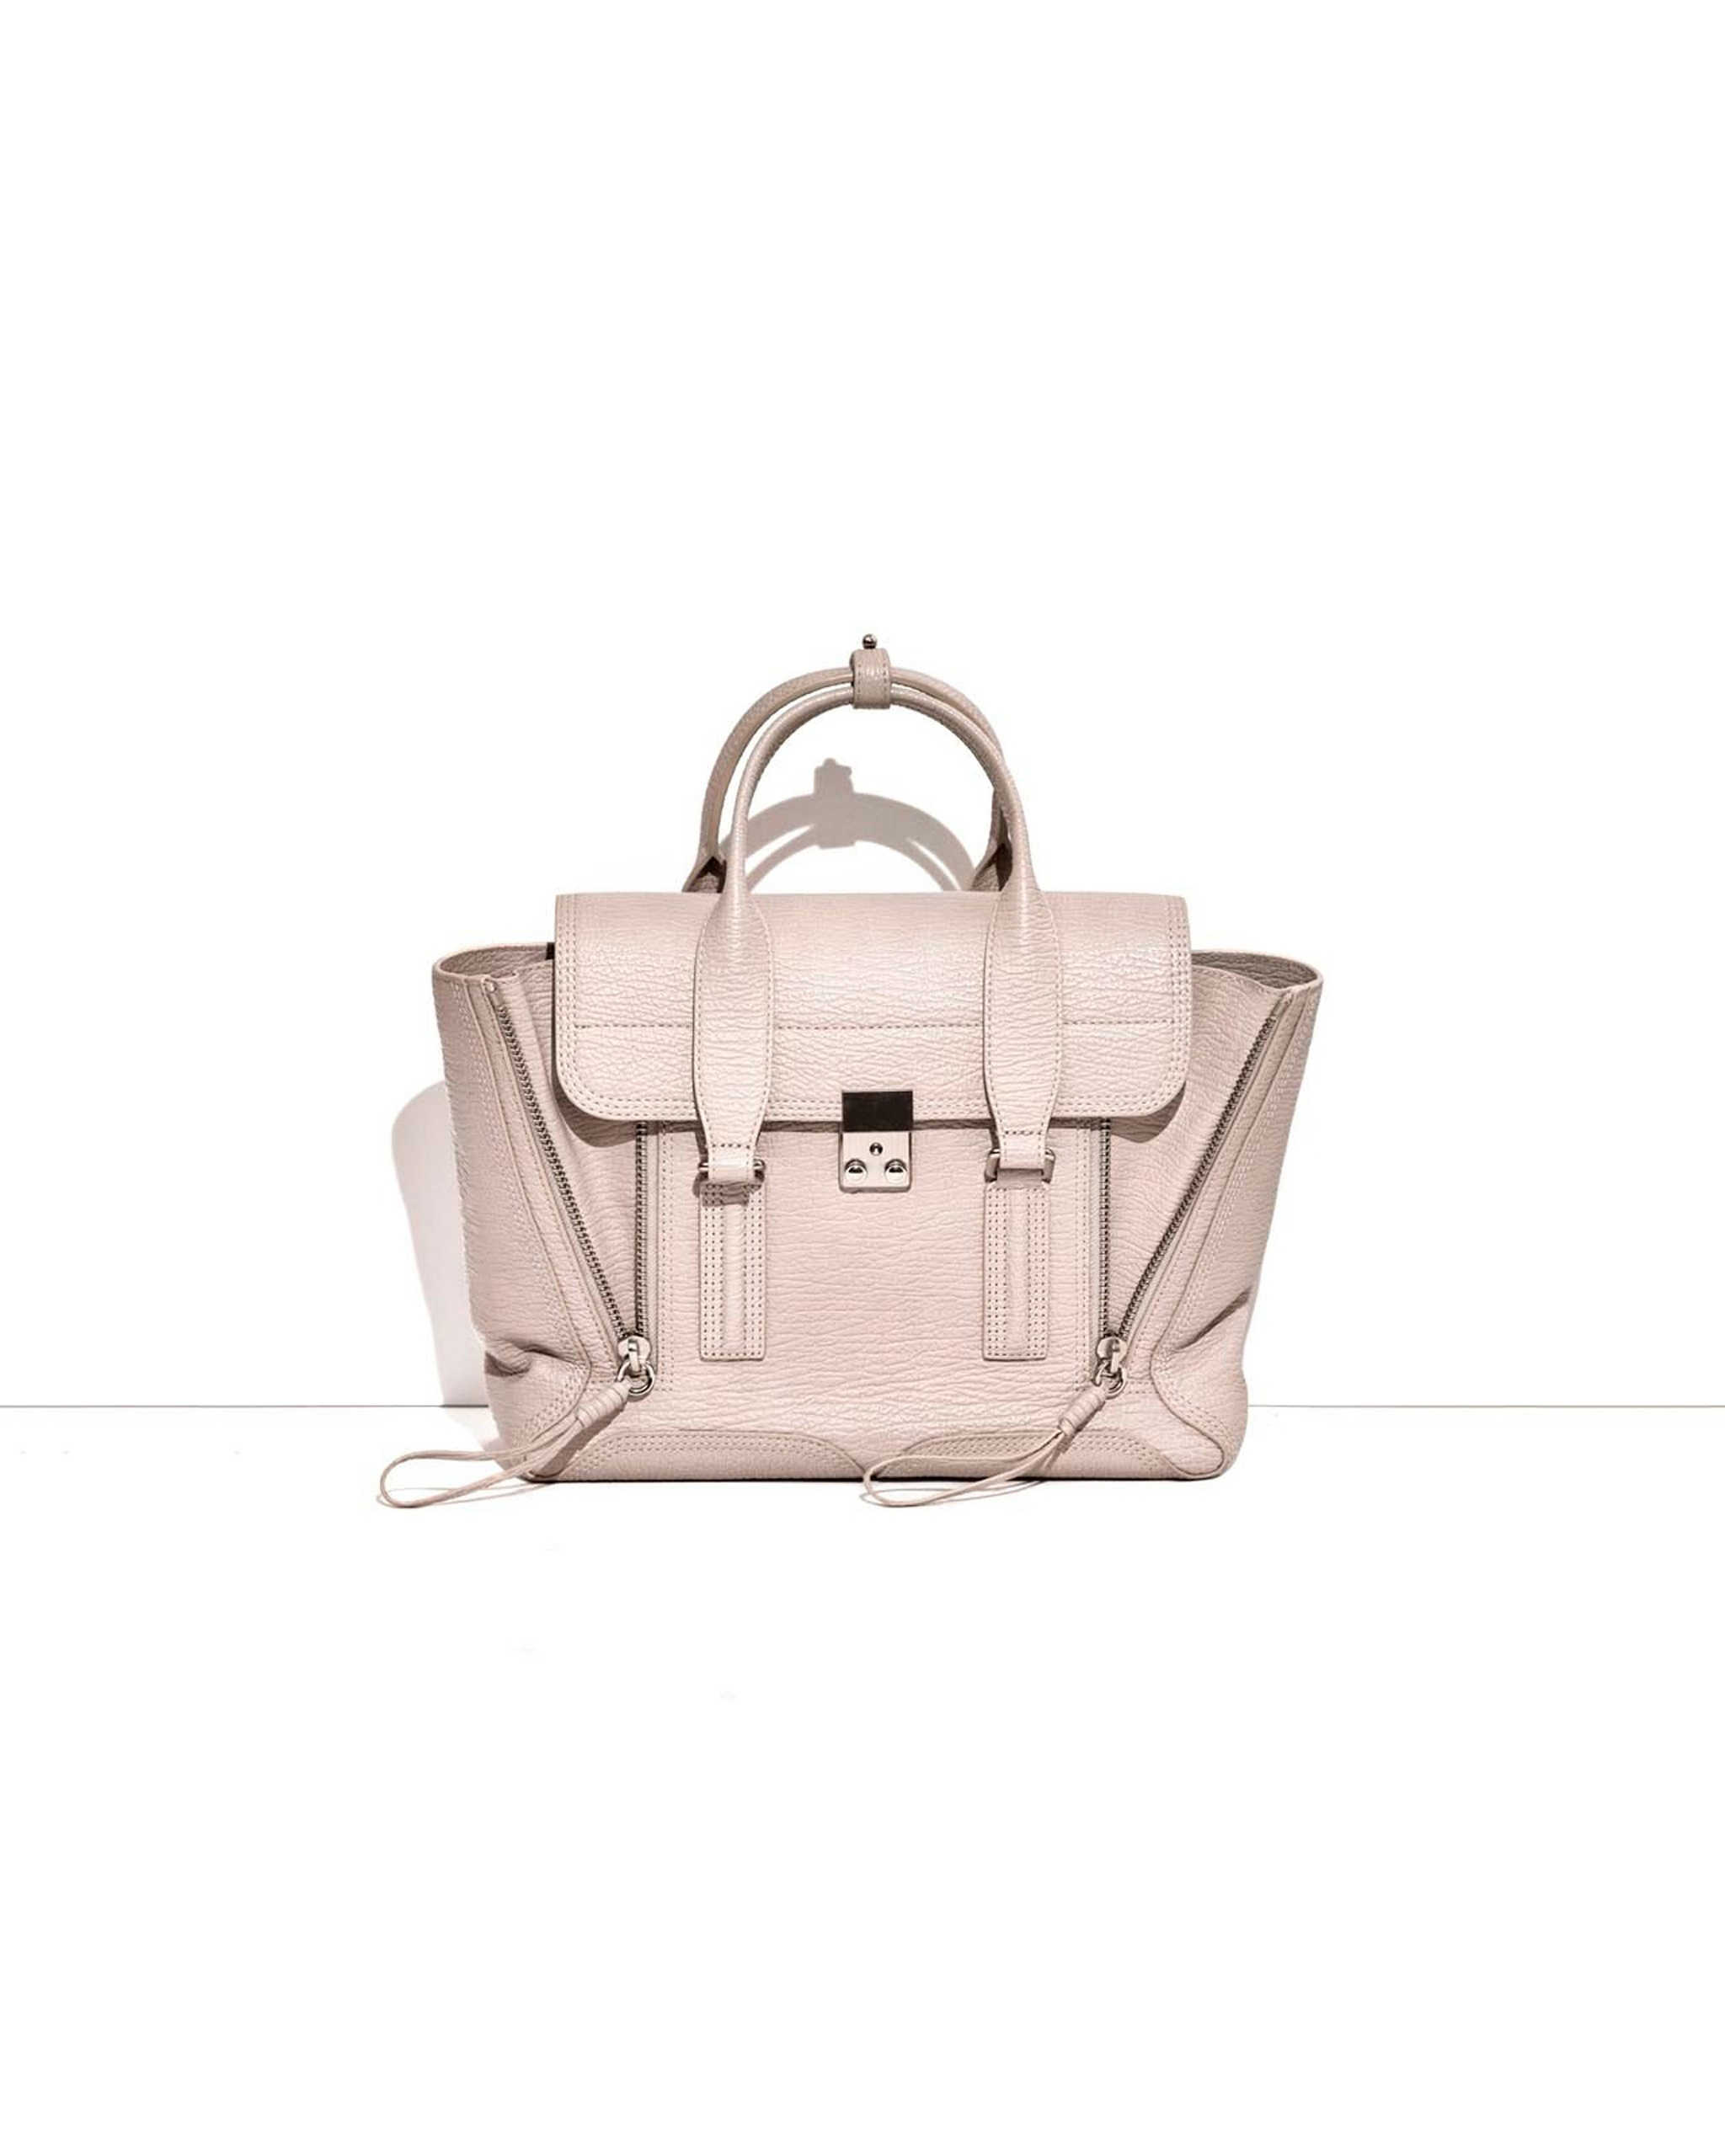 3-1-phillip-lim-pashli-medium-satchel_13570331_17905831_2048